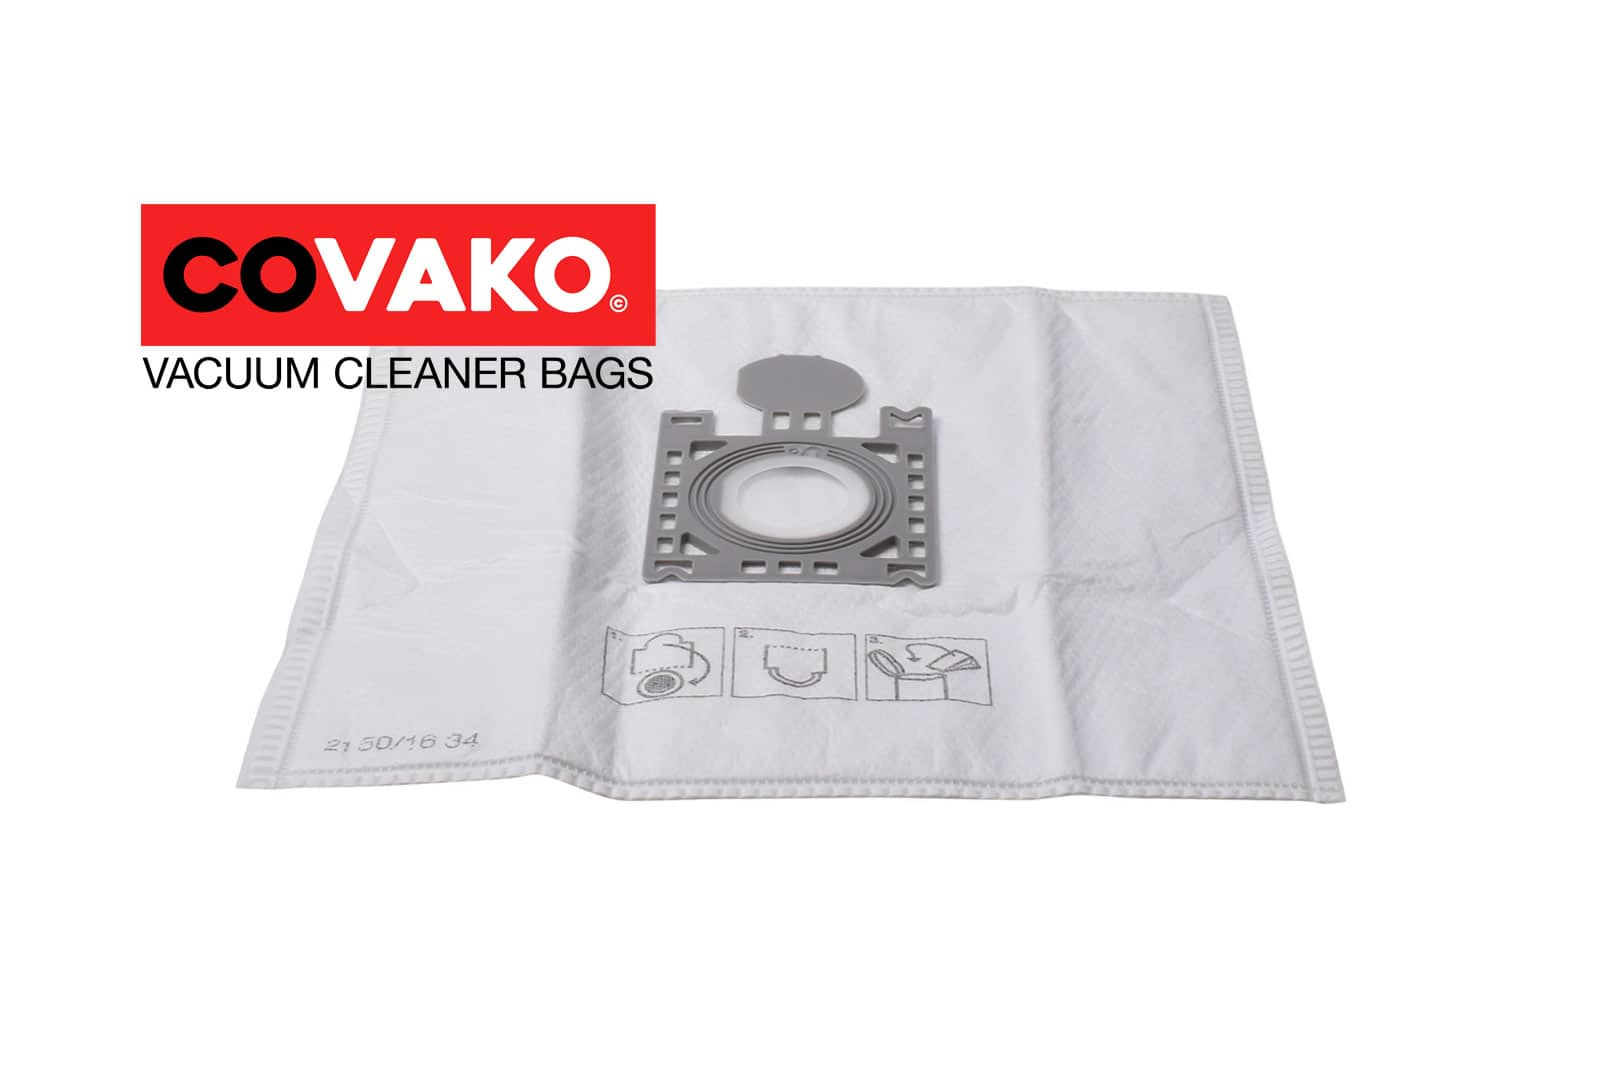 ewt Compact Eco / Synthesis - ewt vacuum cleaner bags